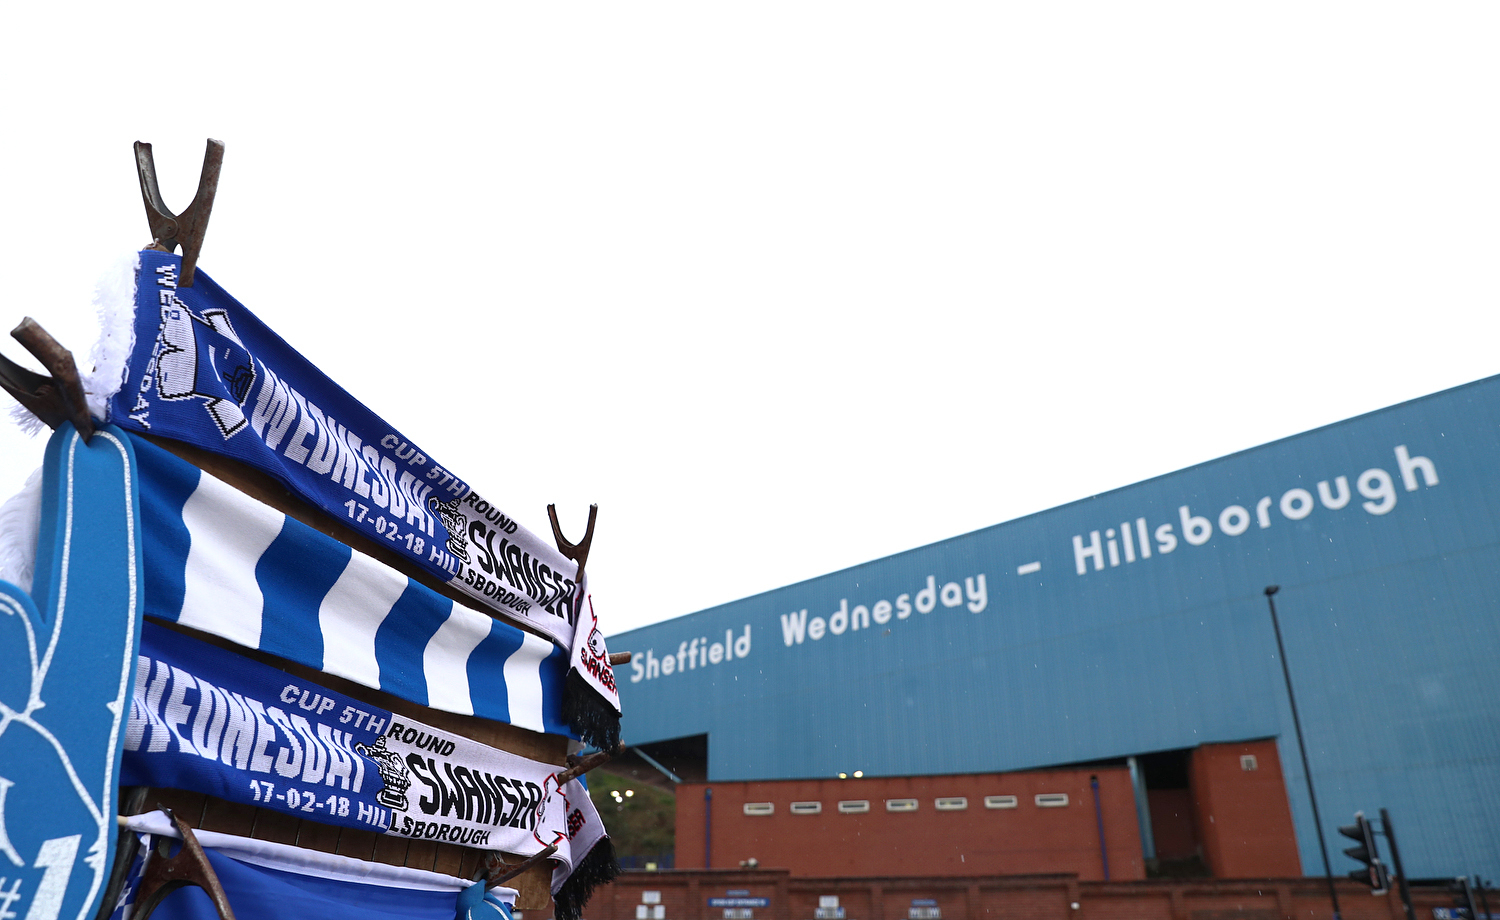 Sheffield Wednesday – Fallen giants looking for a reset